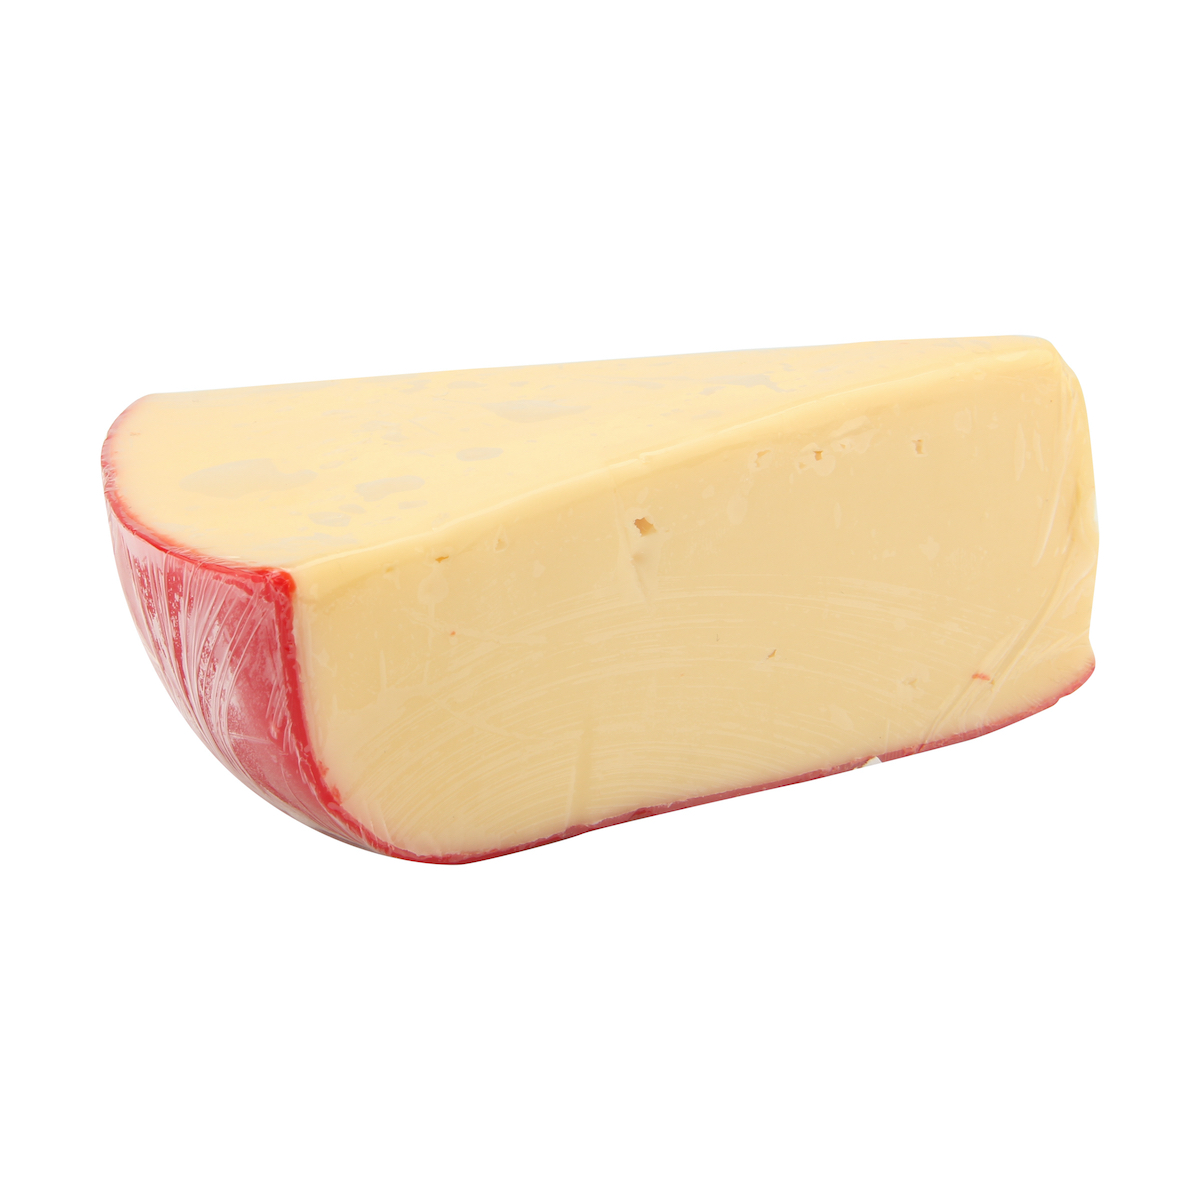 Red Wax Creamy Gouda